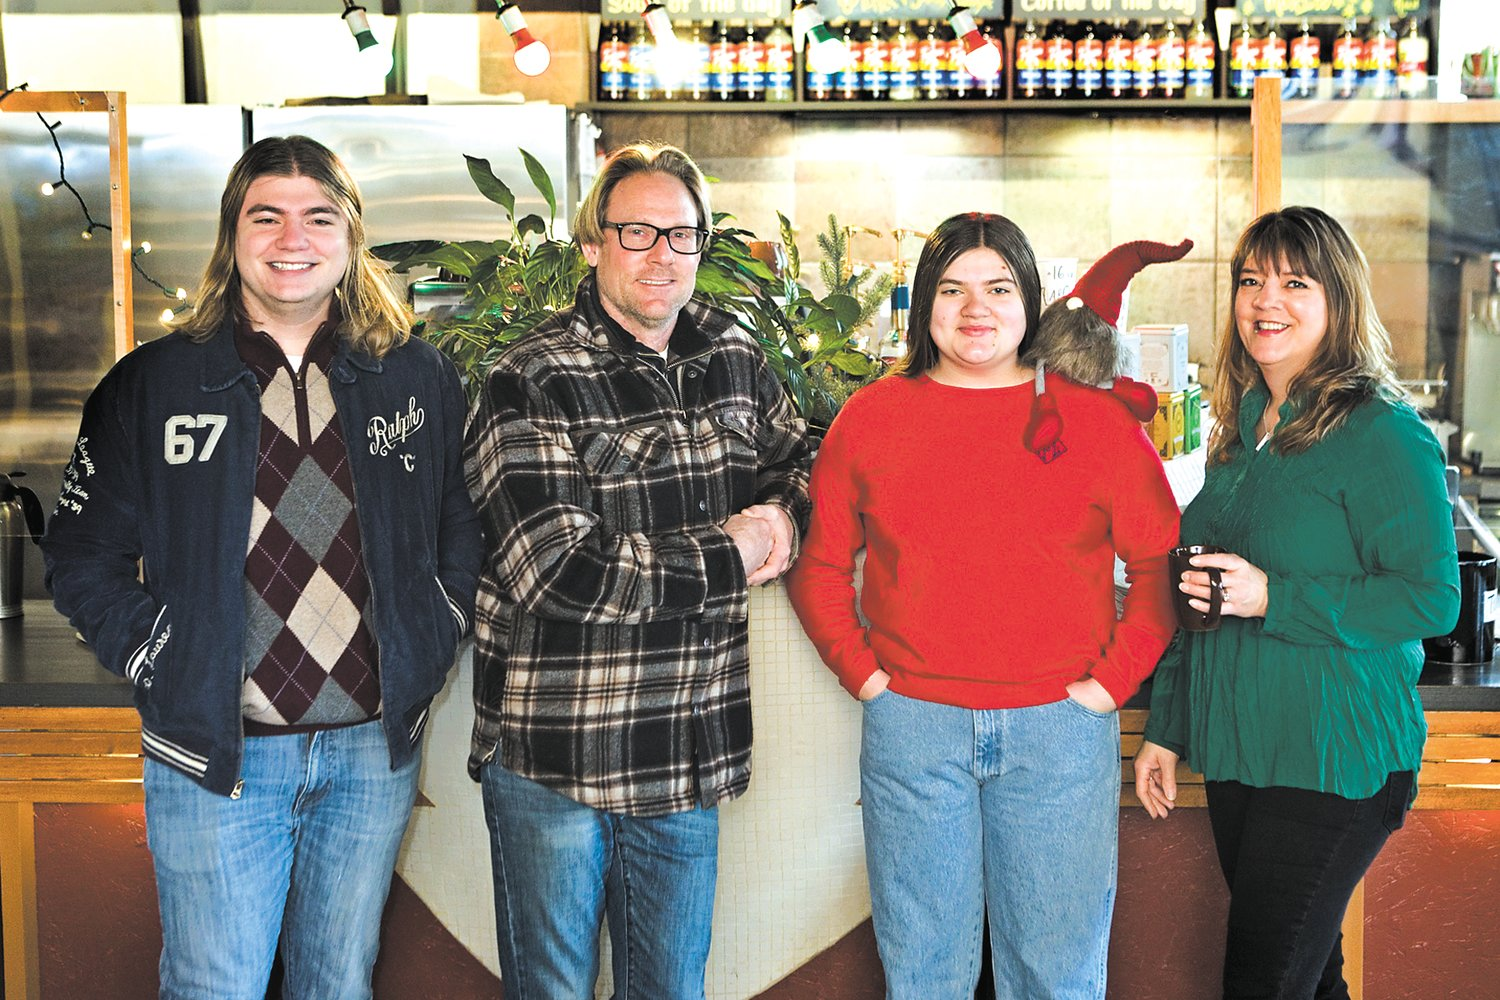 The Bernick family (left to right: Auguste, David, Anavie and Mara) has operated the Riverview Cafe and Wine Bar for more than two decades. (Photo by Margie O'Loughlin)